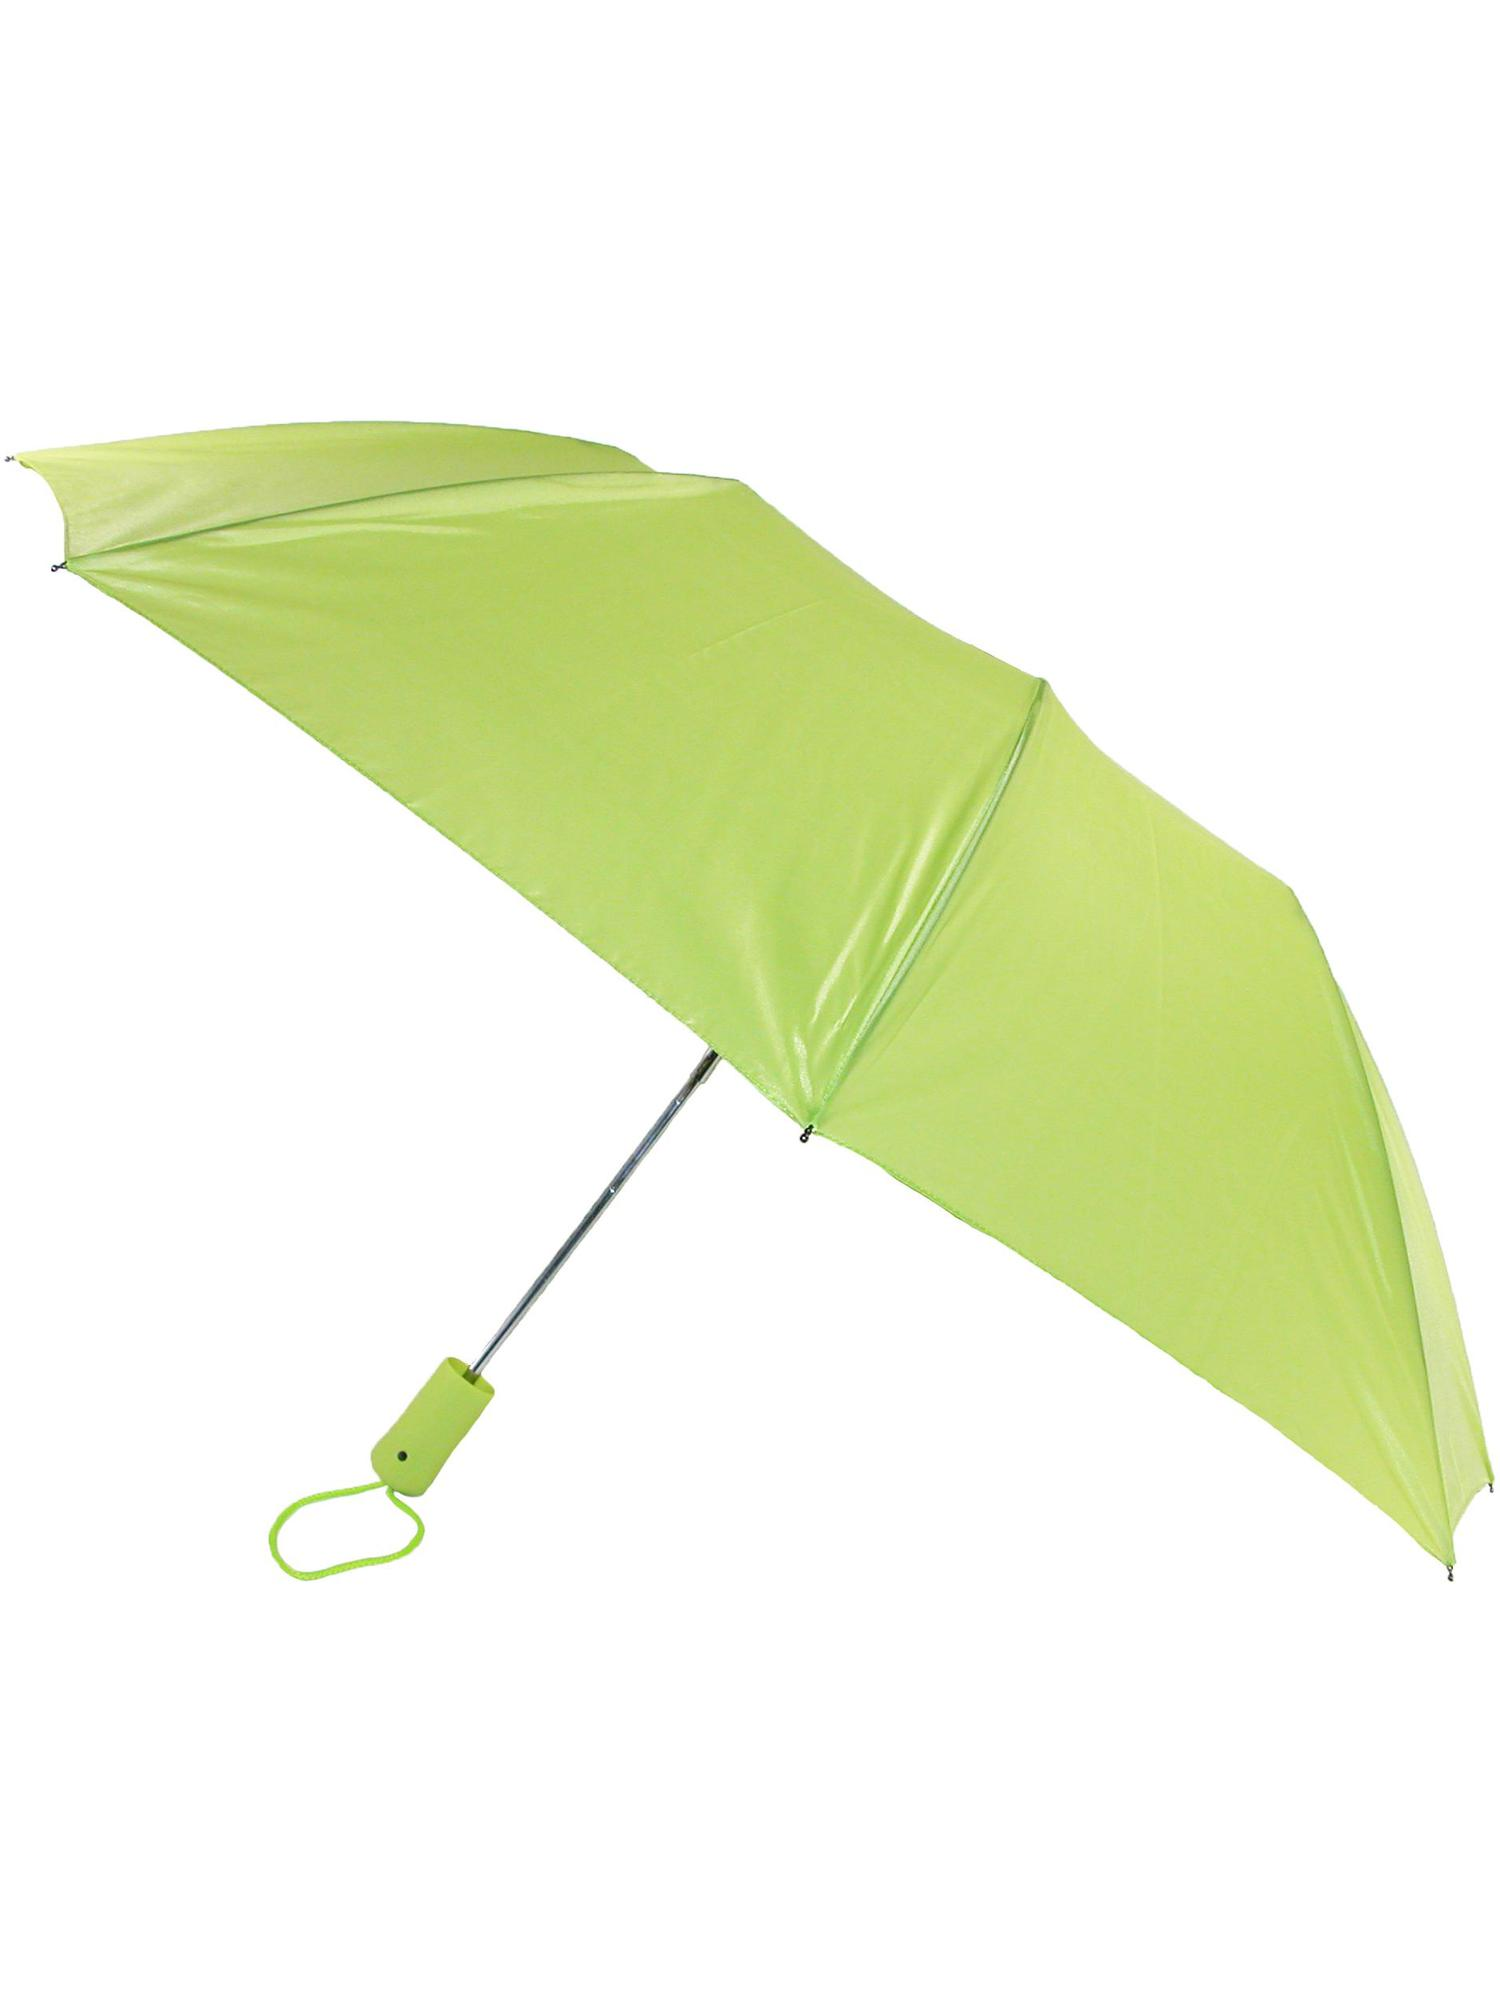 Compact Travel Umbrella Walmart Rainkist Size One Size Compact Auto Open Folding